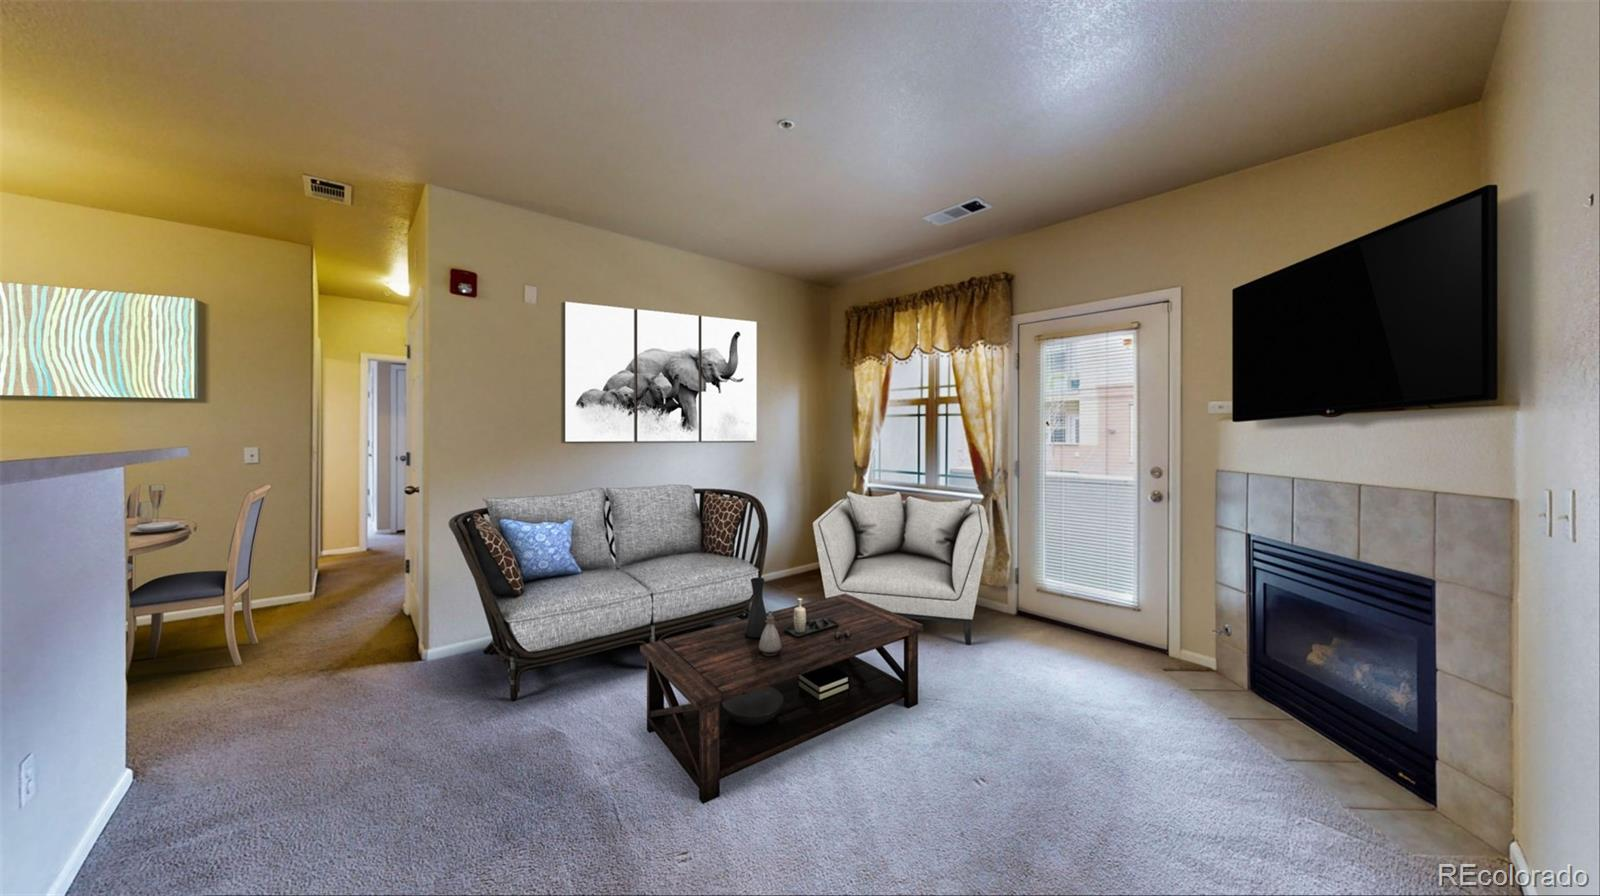 MLS# 3562922 - 1 - 8123 W 51st Place #202, Arvada, CO 80002